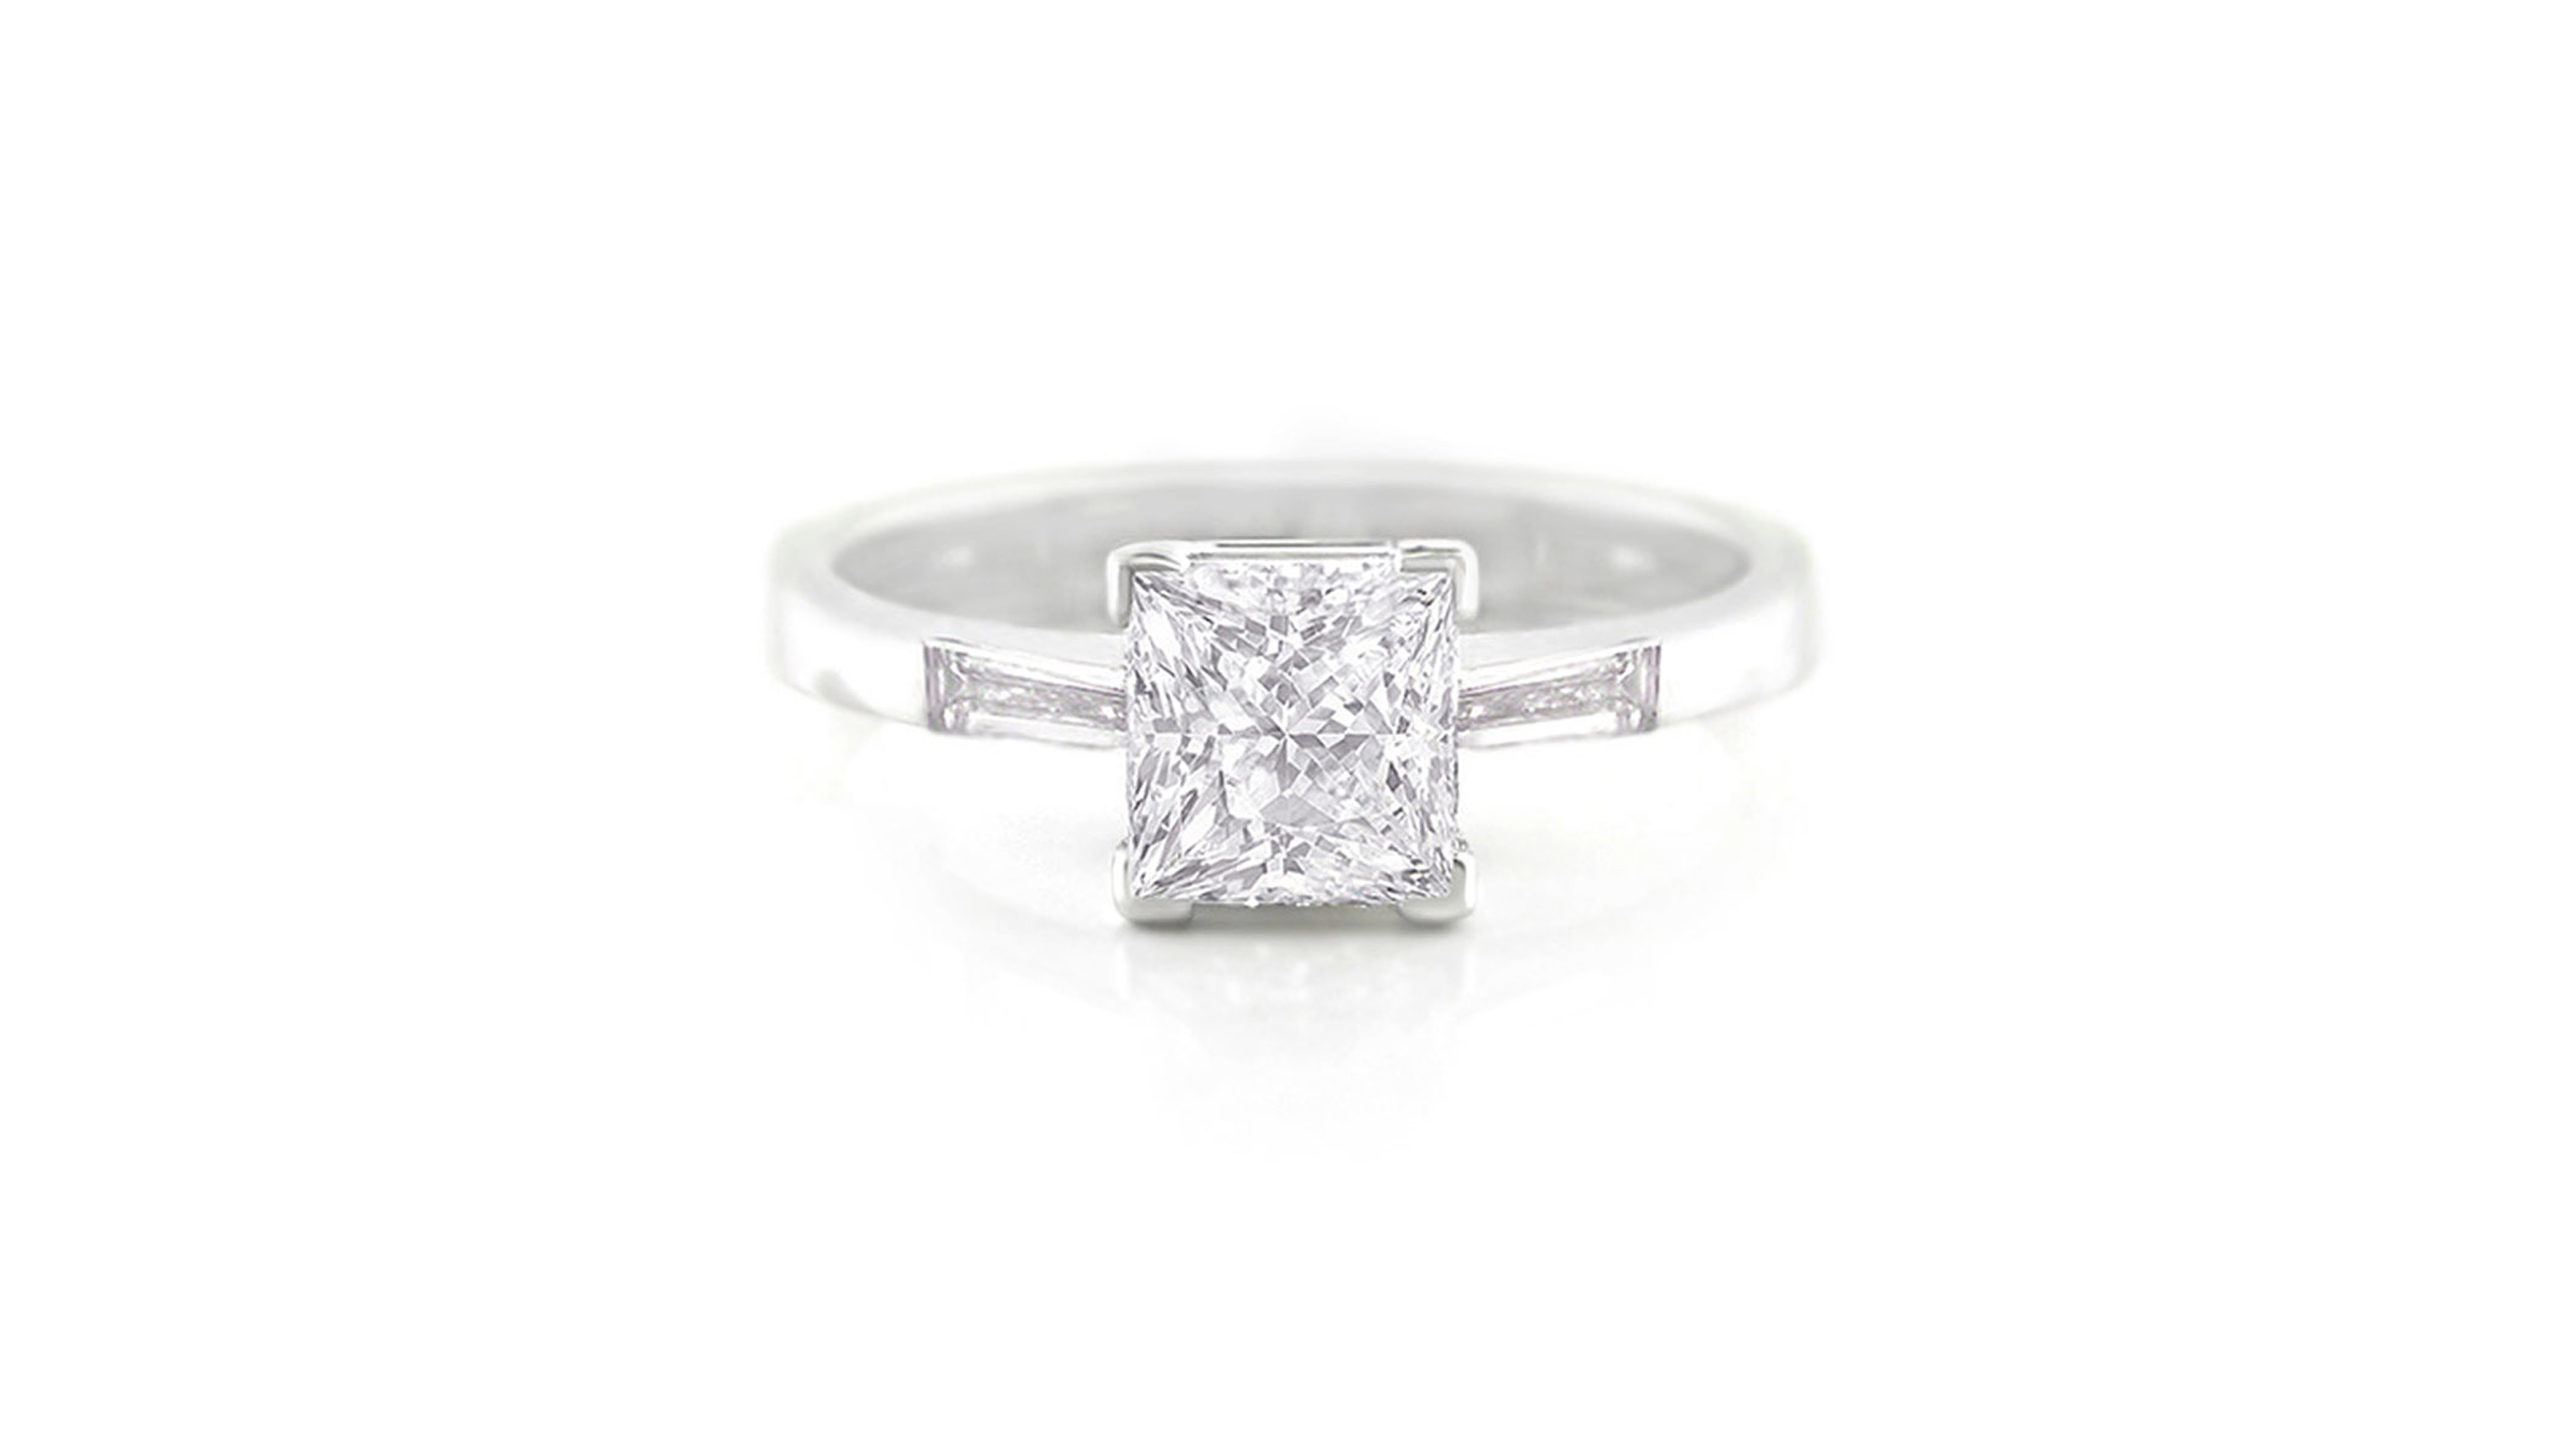 princess and baguette diamond engagement ring | 18 carat white gold diamond engagement ring